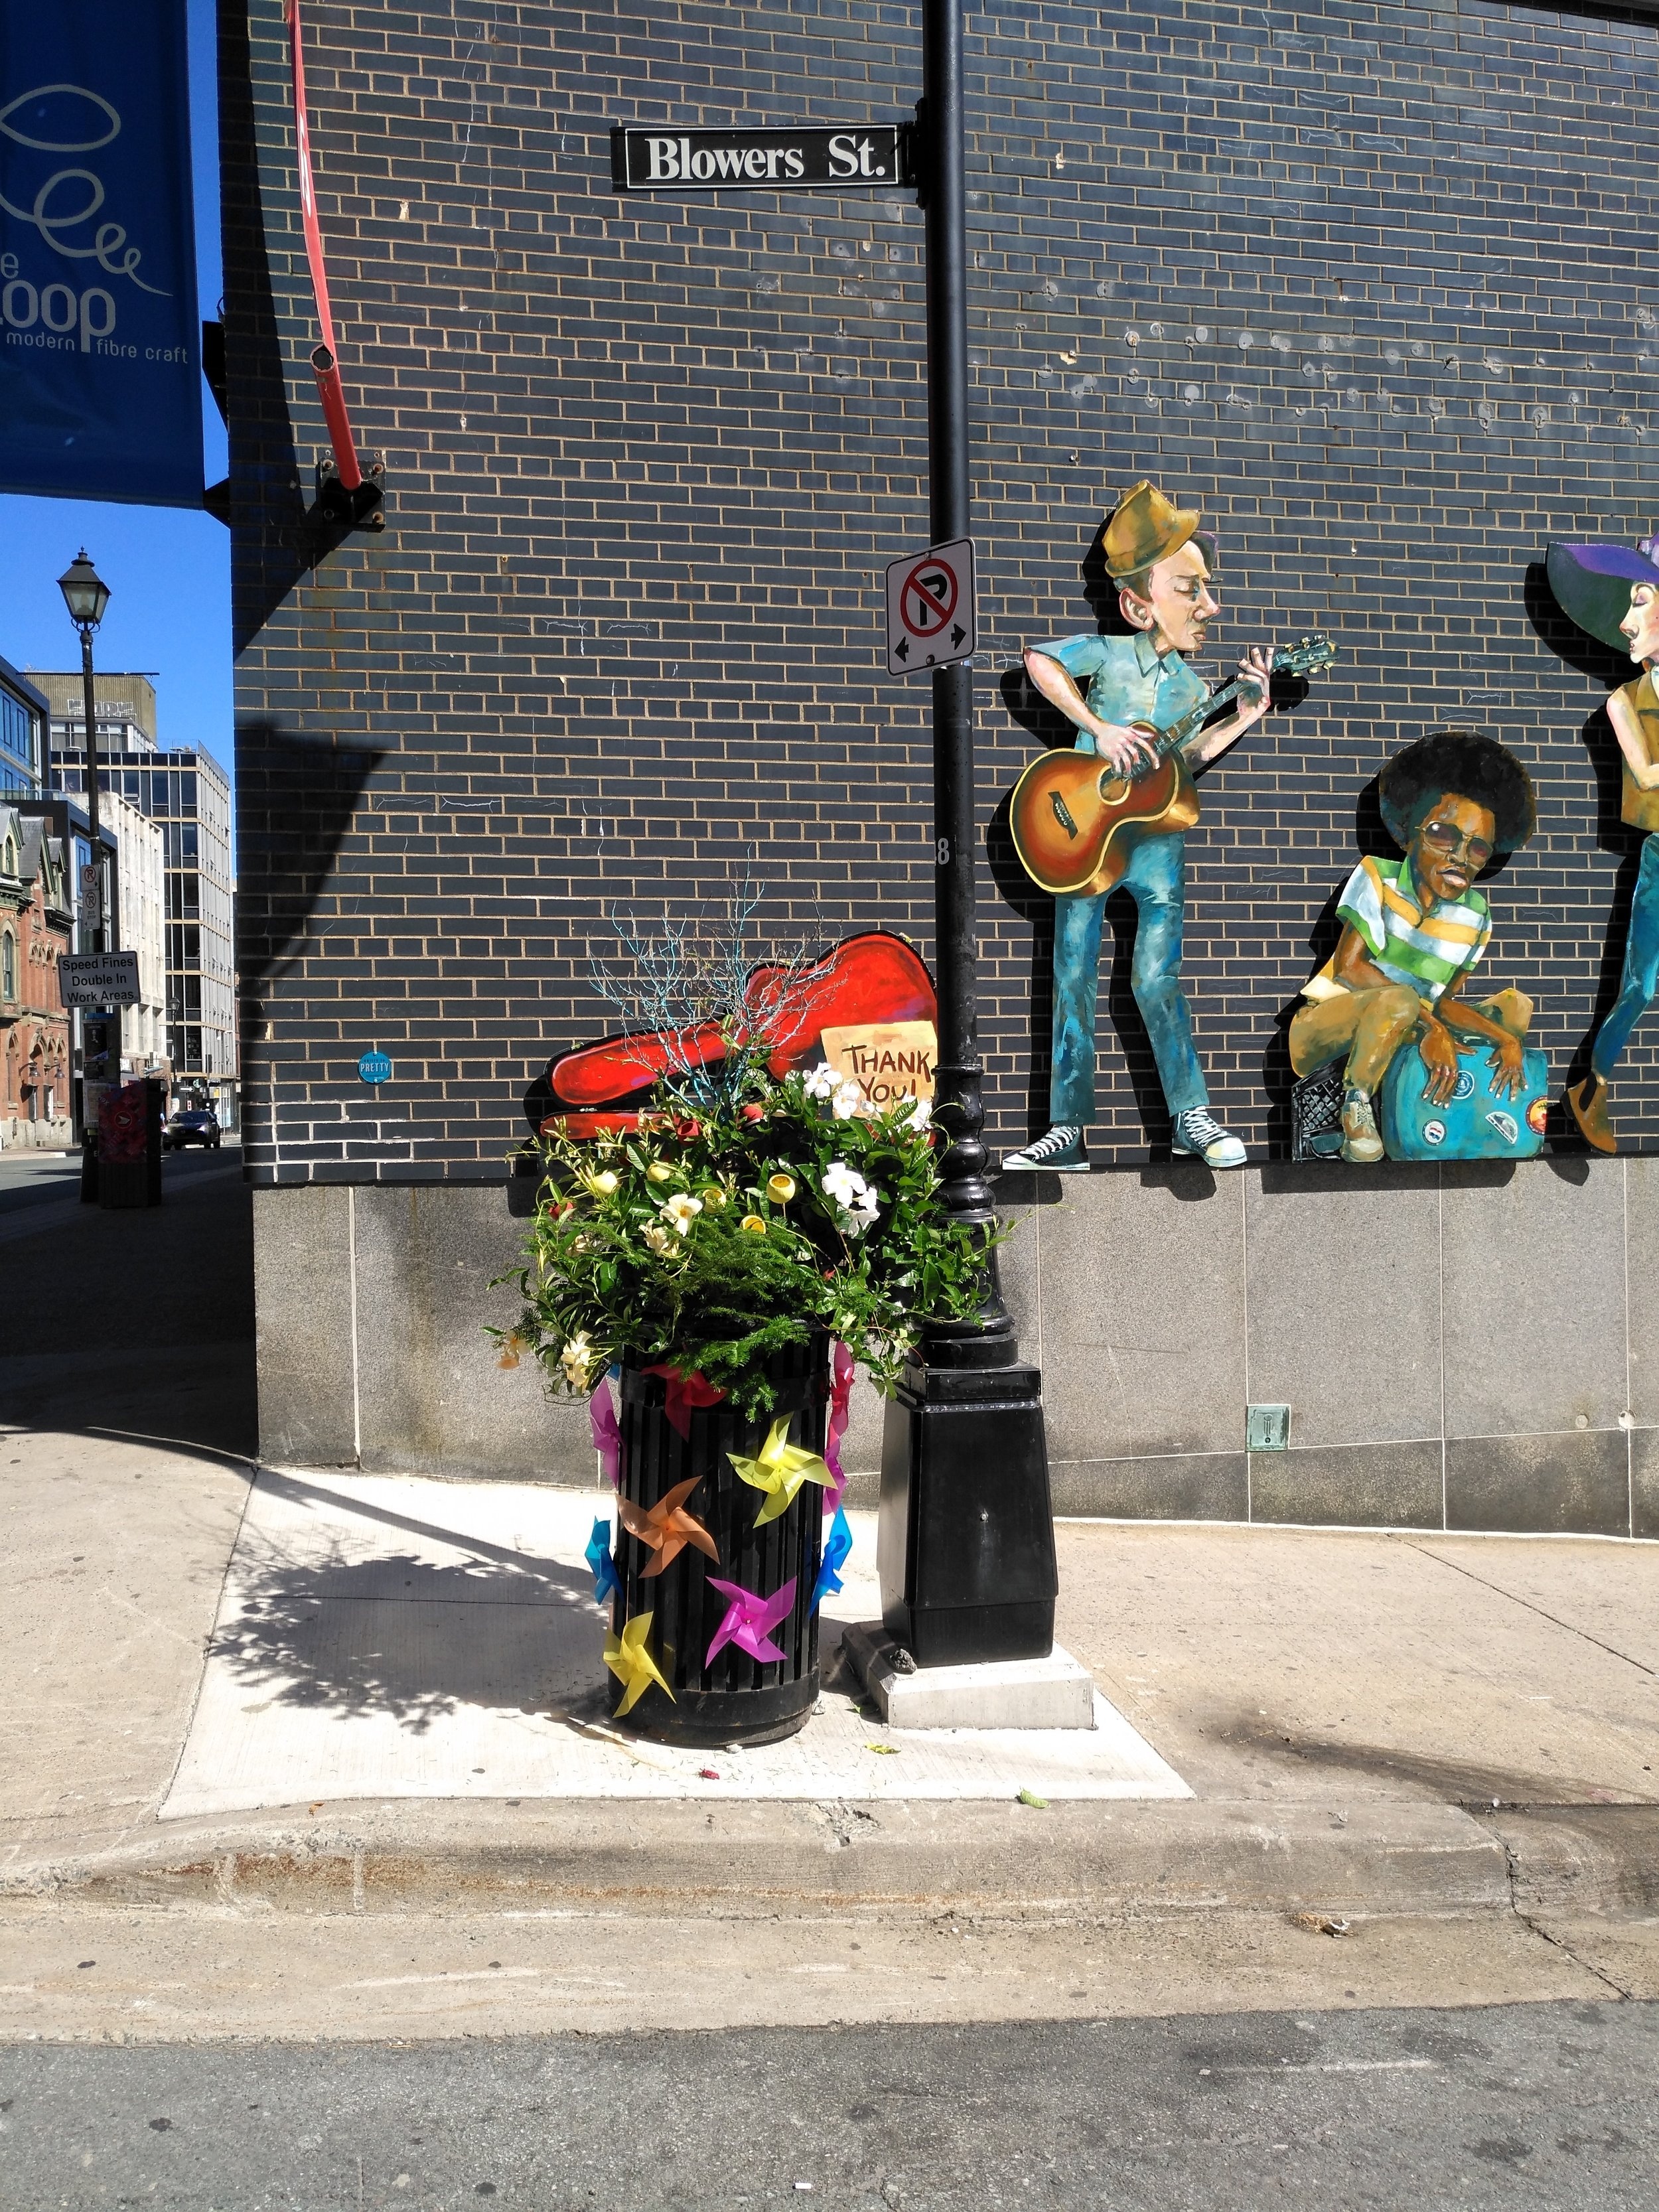 The Barrington Street Bouquet. July, 2017 at the corner of Barrington and Blower Streets, Halifax.